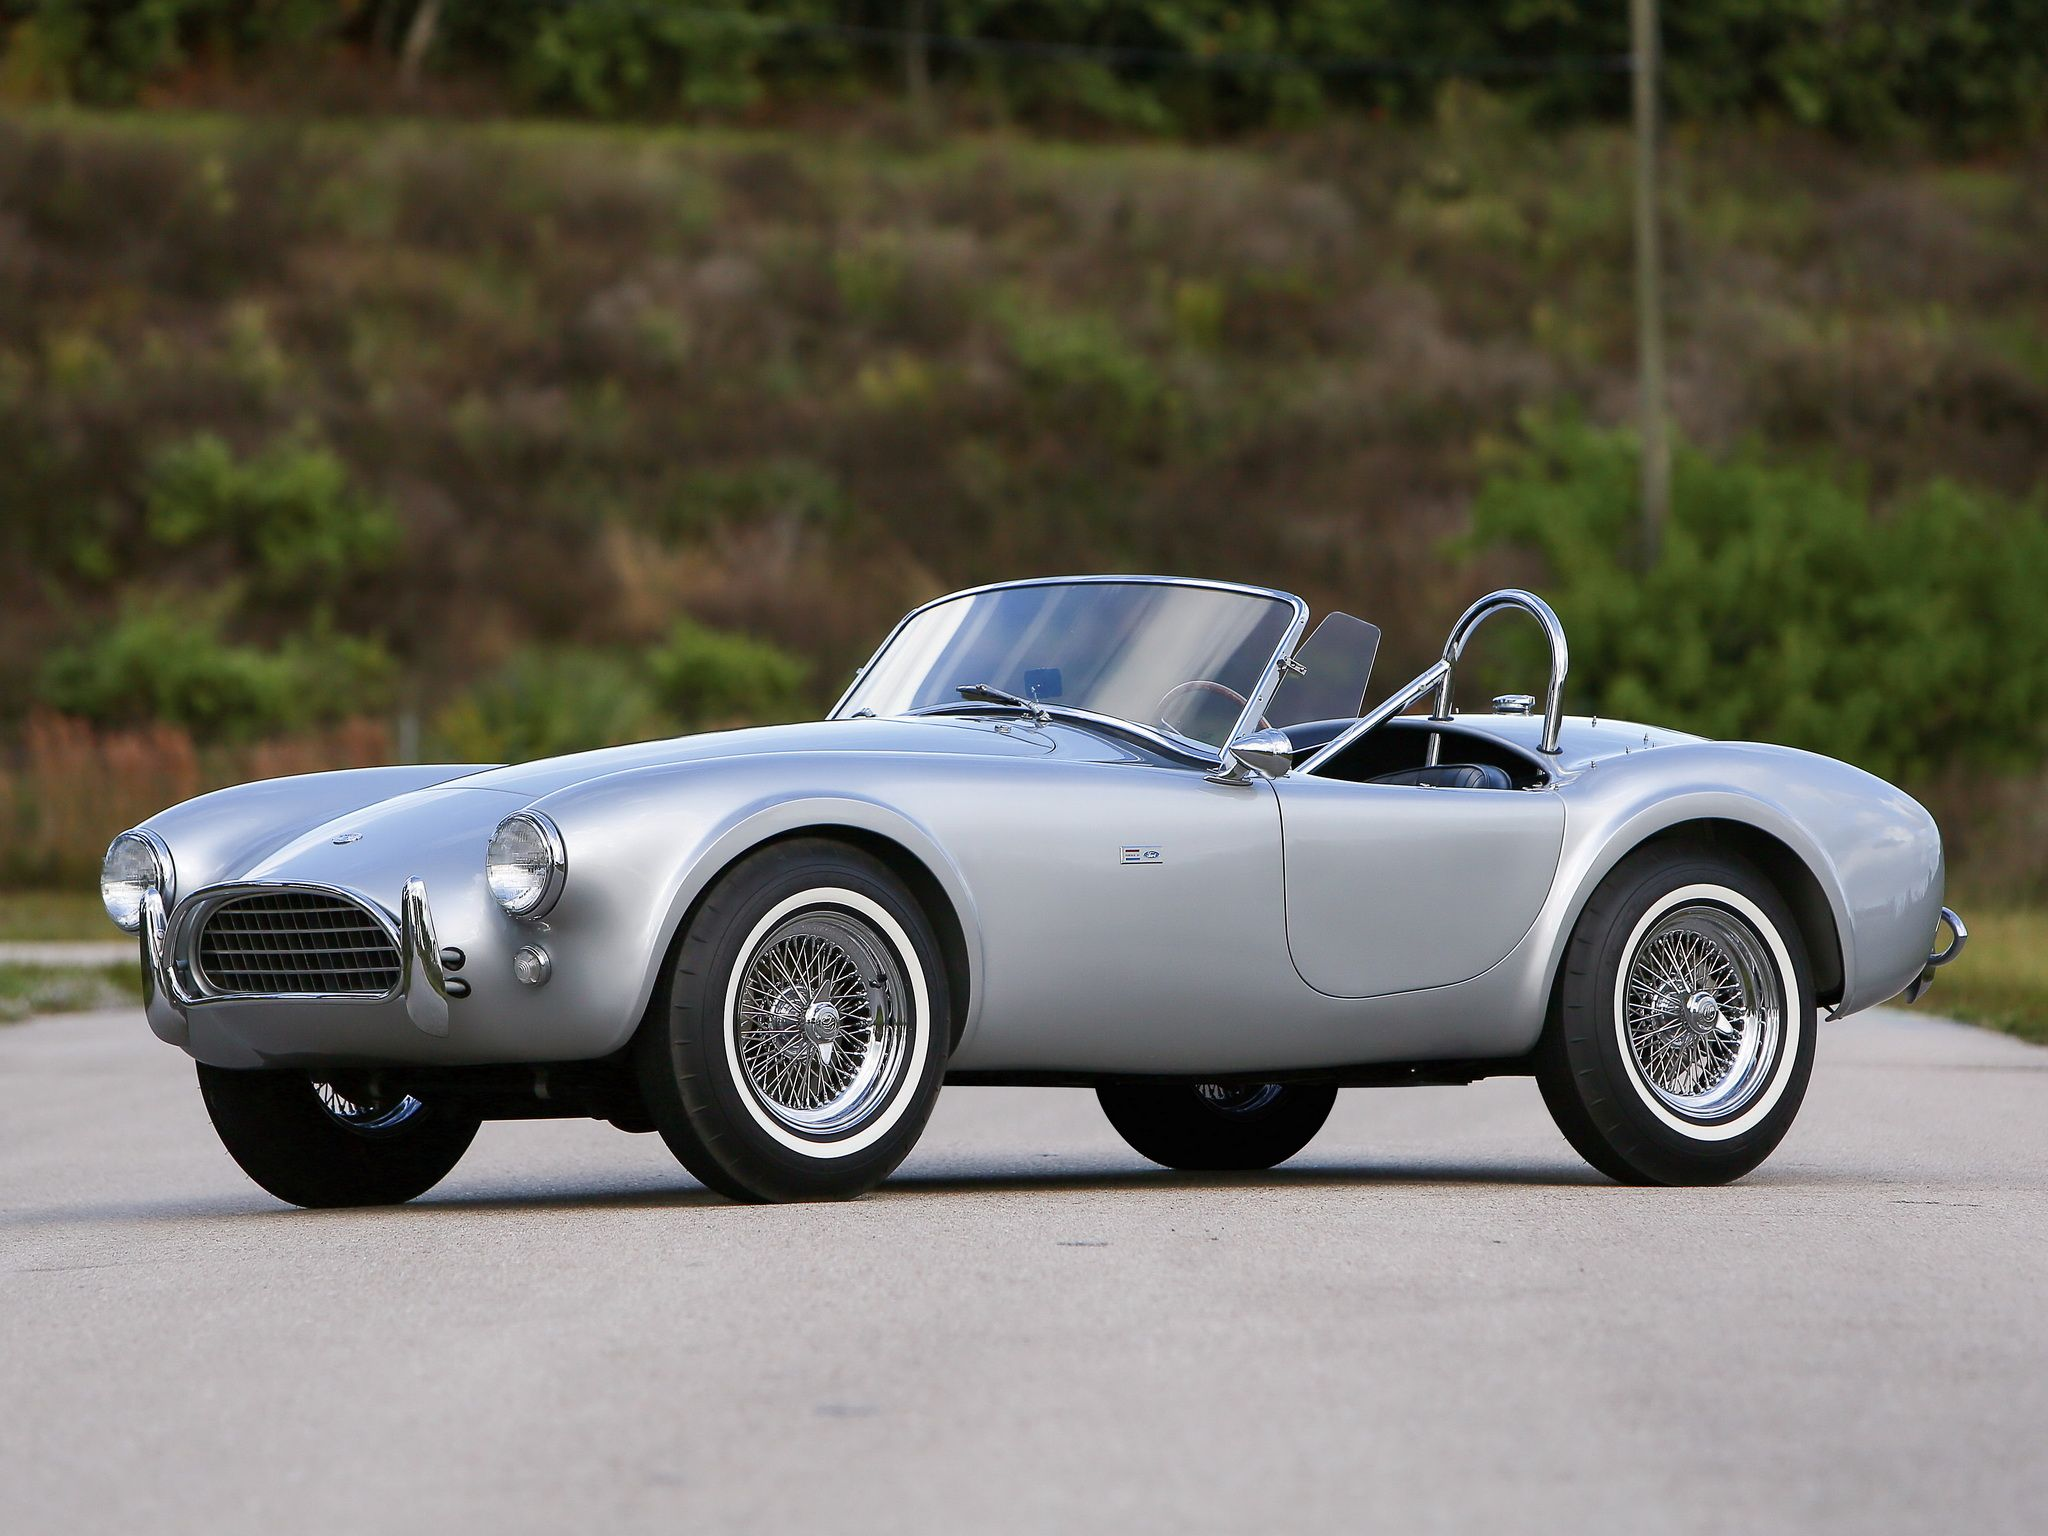 Rare 1963 shelby 289 cobra leads exciting line up at auctions america s fort lauderdale sale